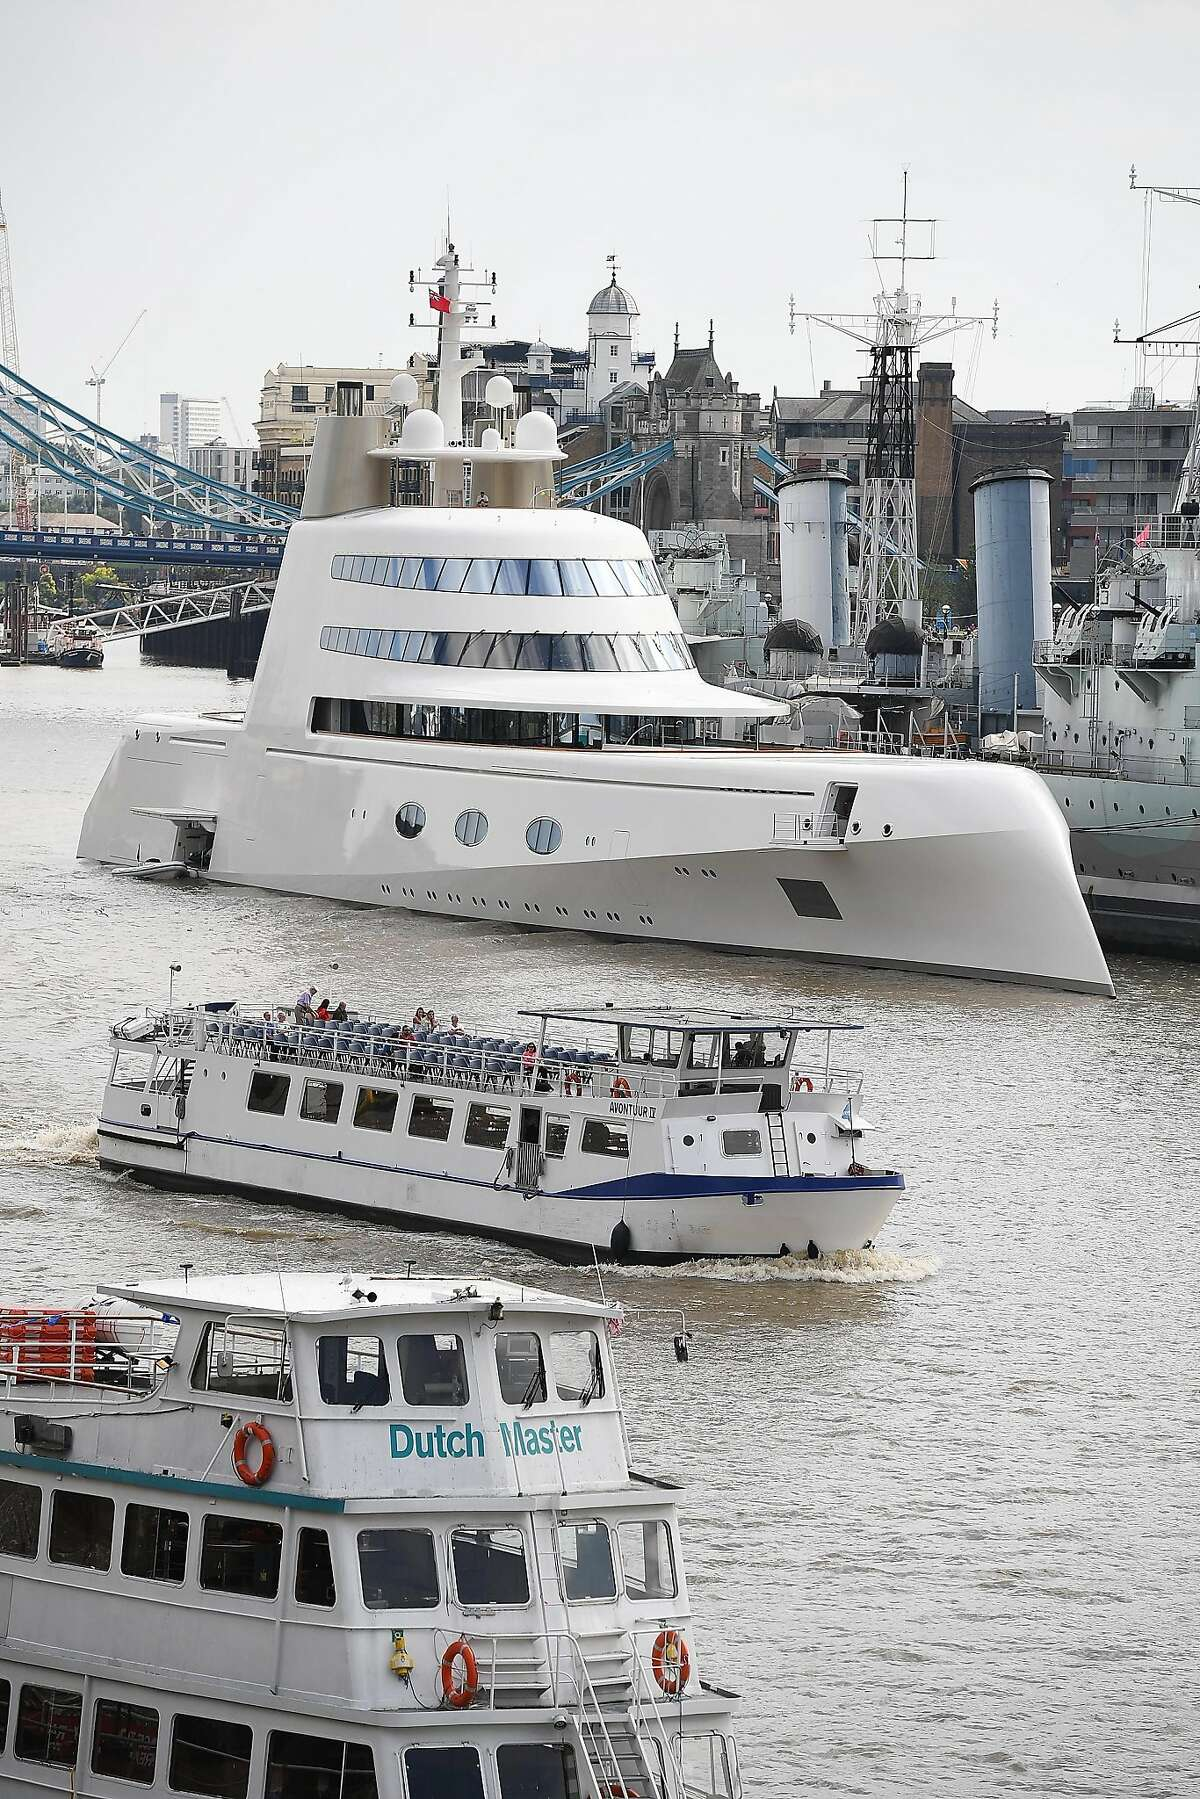 Russian billionaire Andrey Melnichenko's 225m Philippe Starck-designed boat is seen moored next to HMS Belfast on the River Thames on September 7, 2016 in London, England. The